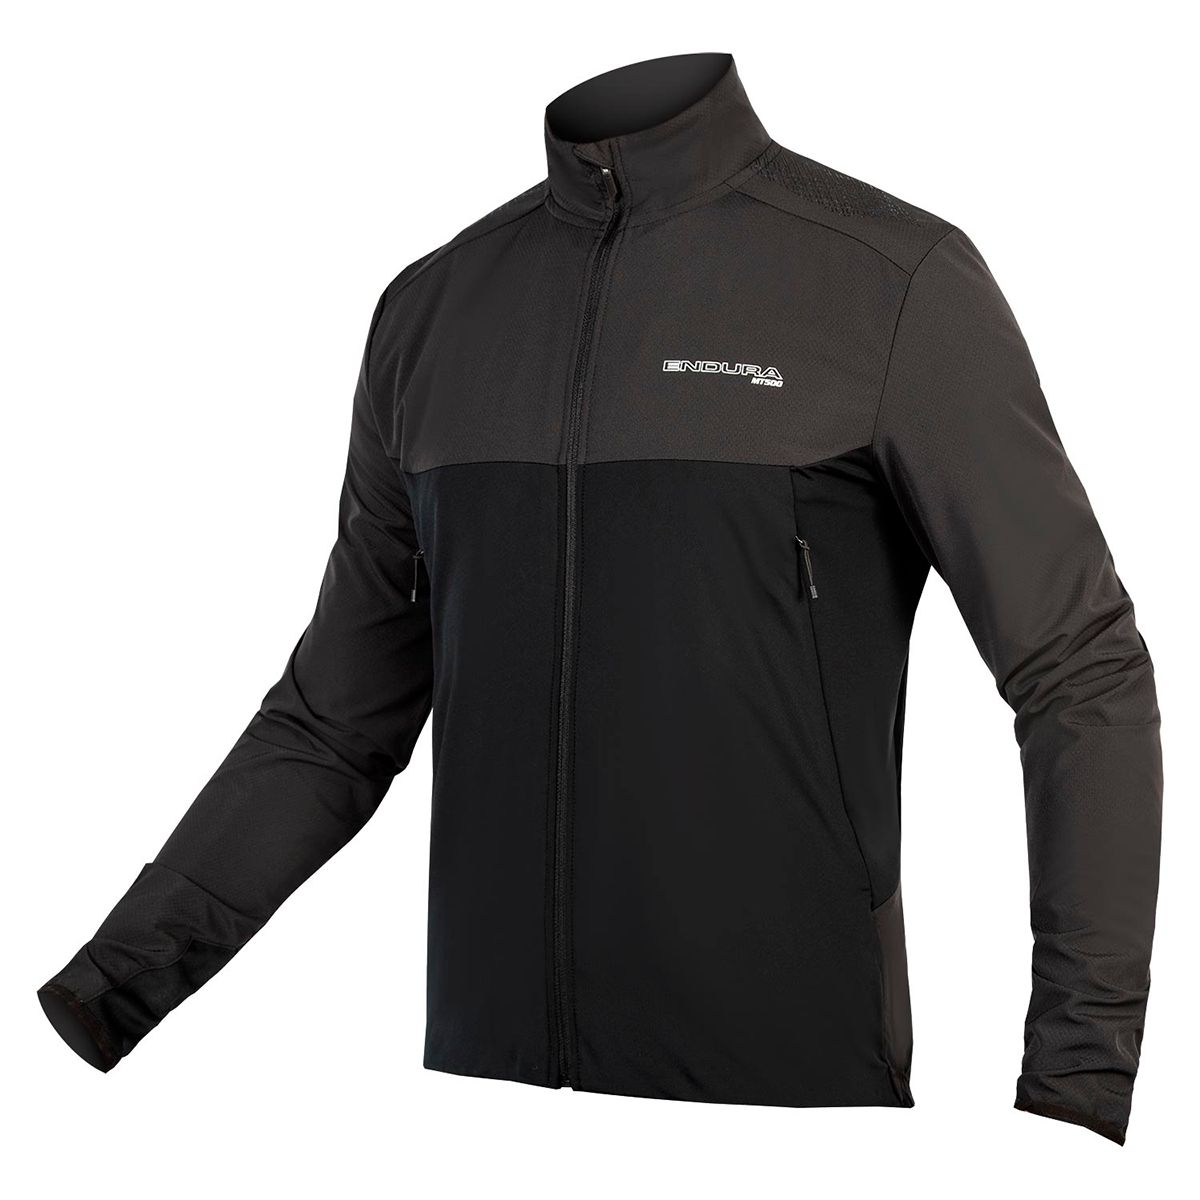 MT500 THERMO L/S JERSEY for men